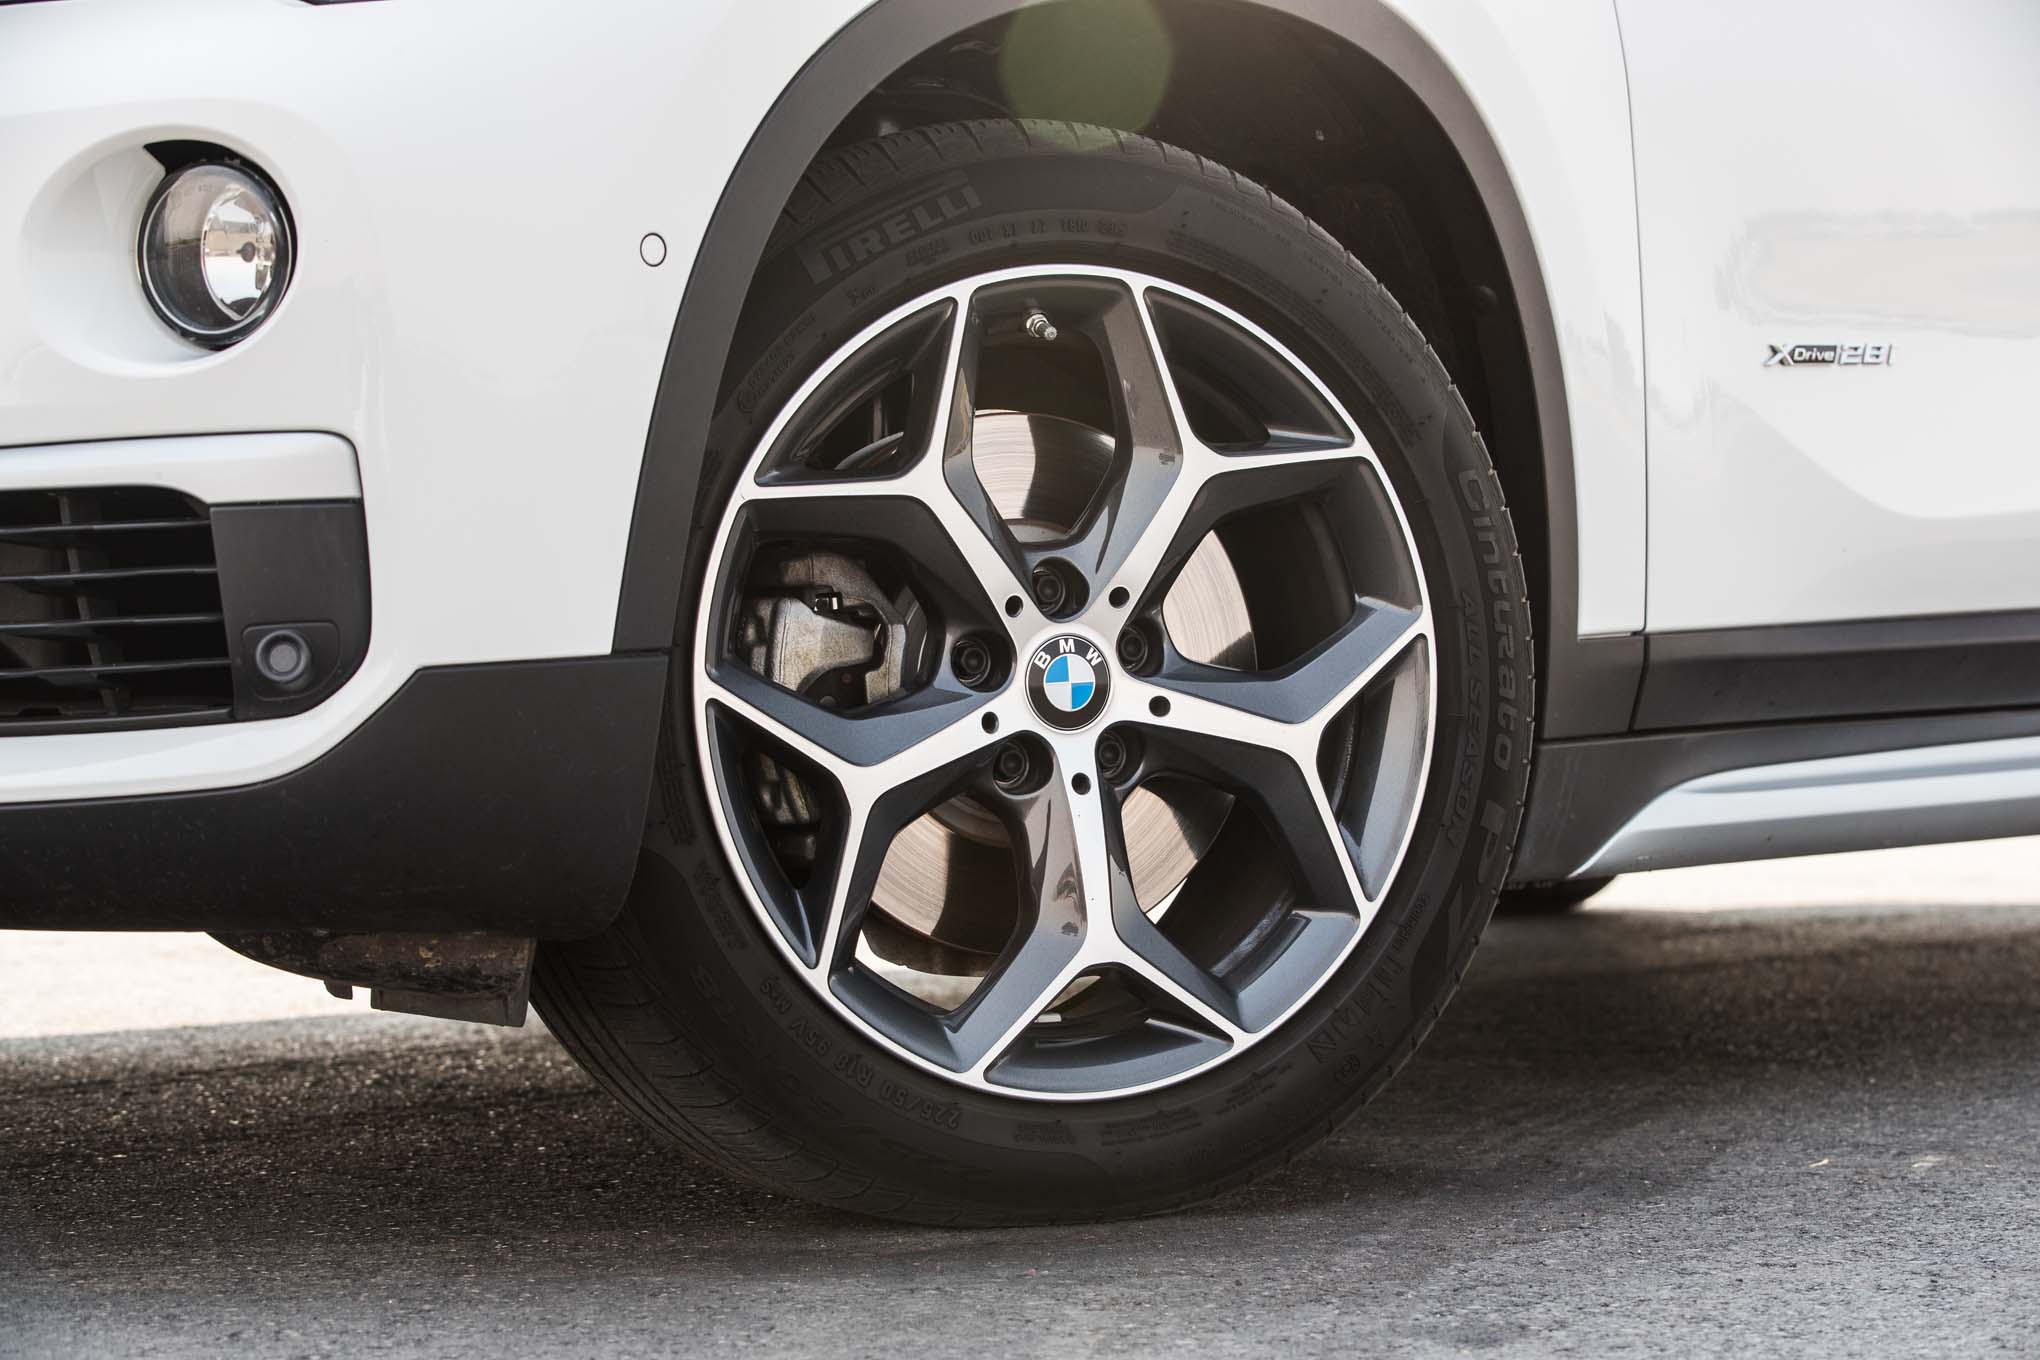 2017 BMW X1 XDrive28i Exterior View Wheel (Photo 9 of 23)